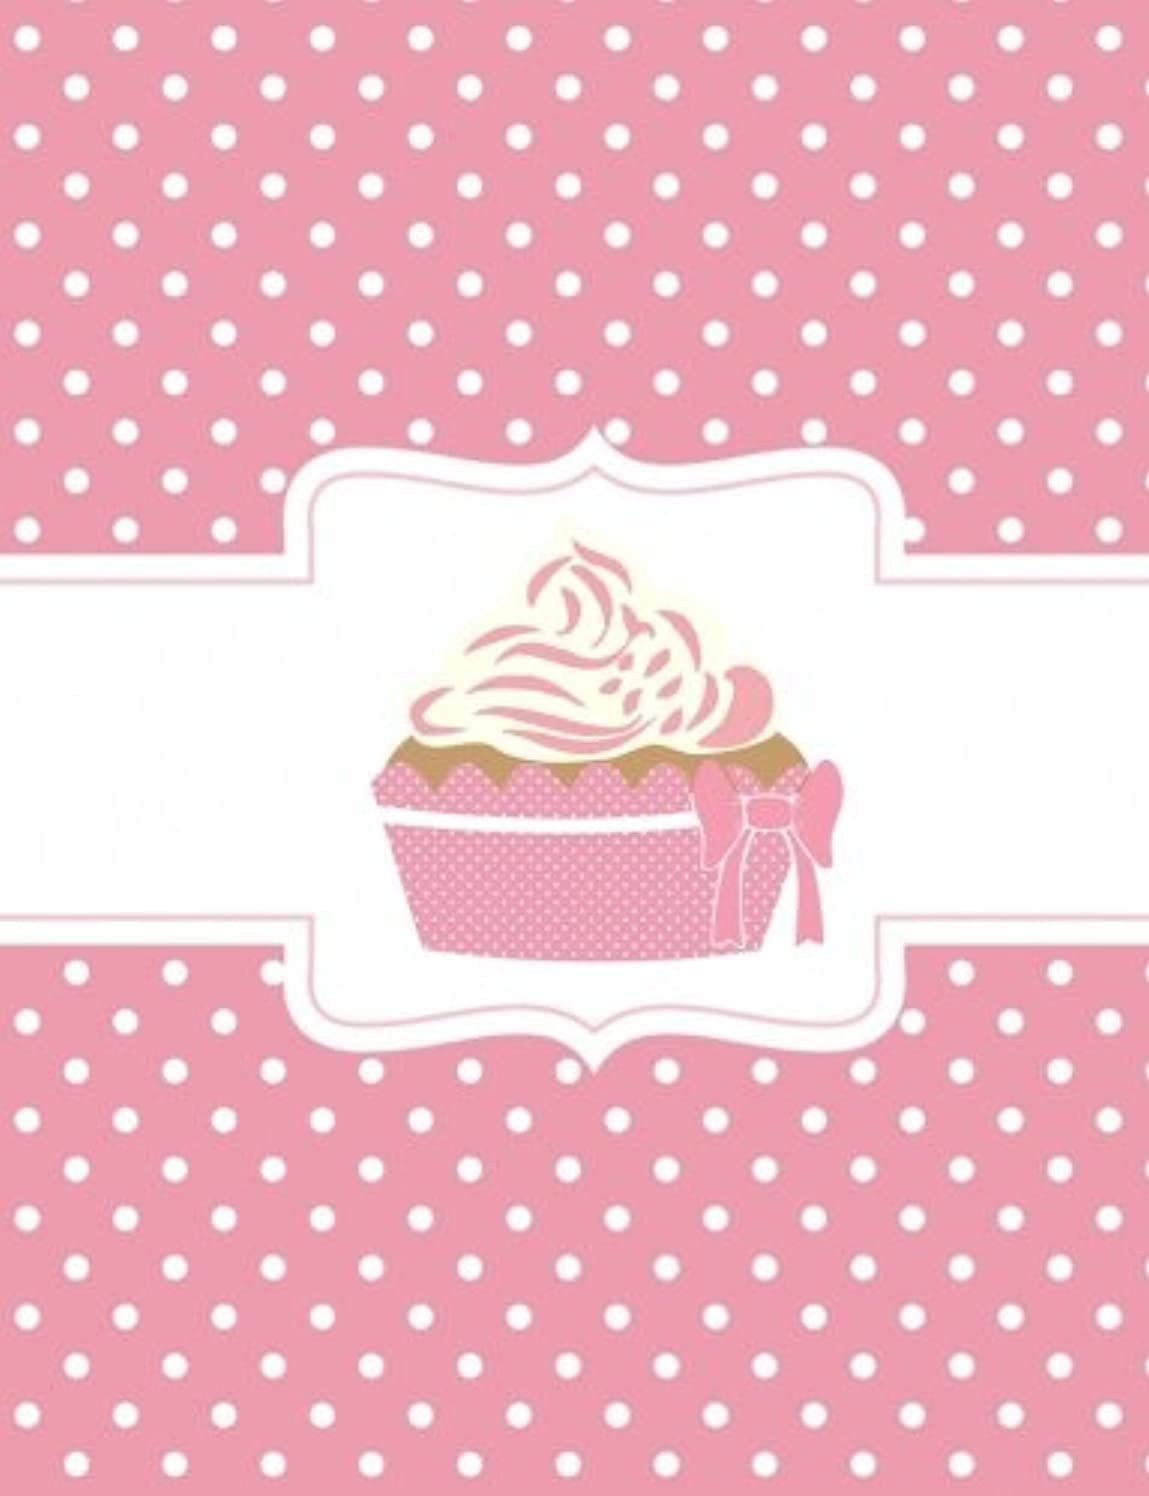 発言する唯一爆発するPink Polka Dot Cupcake Composition Notebook: 5x5 Quad Rule Graph Paper - 202 Pages, (7.44 x 9.69)